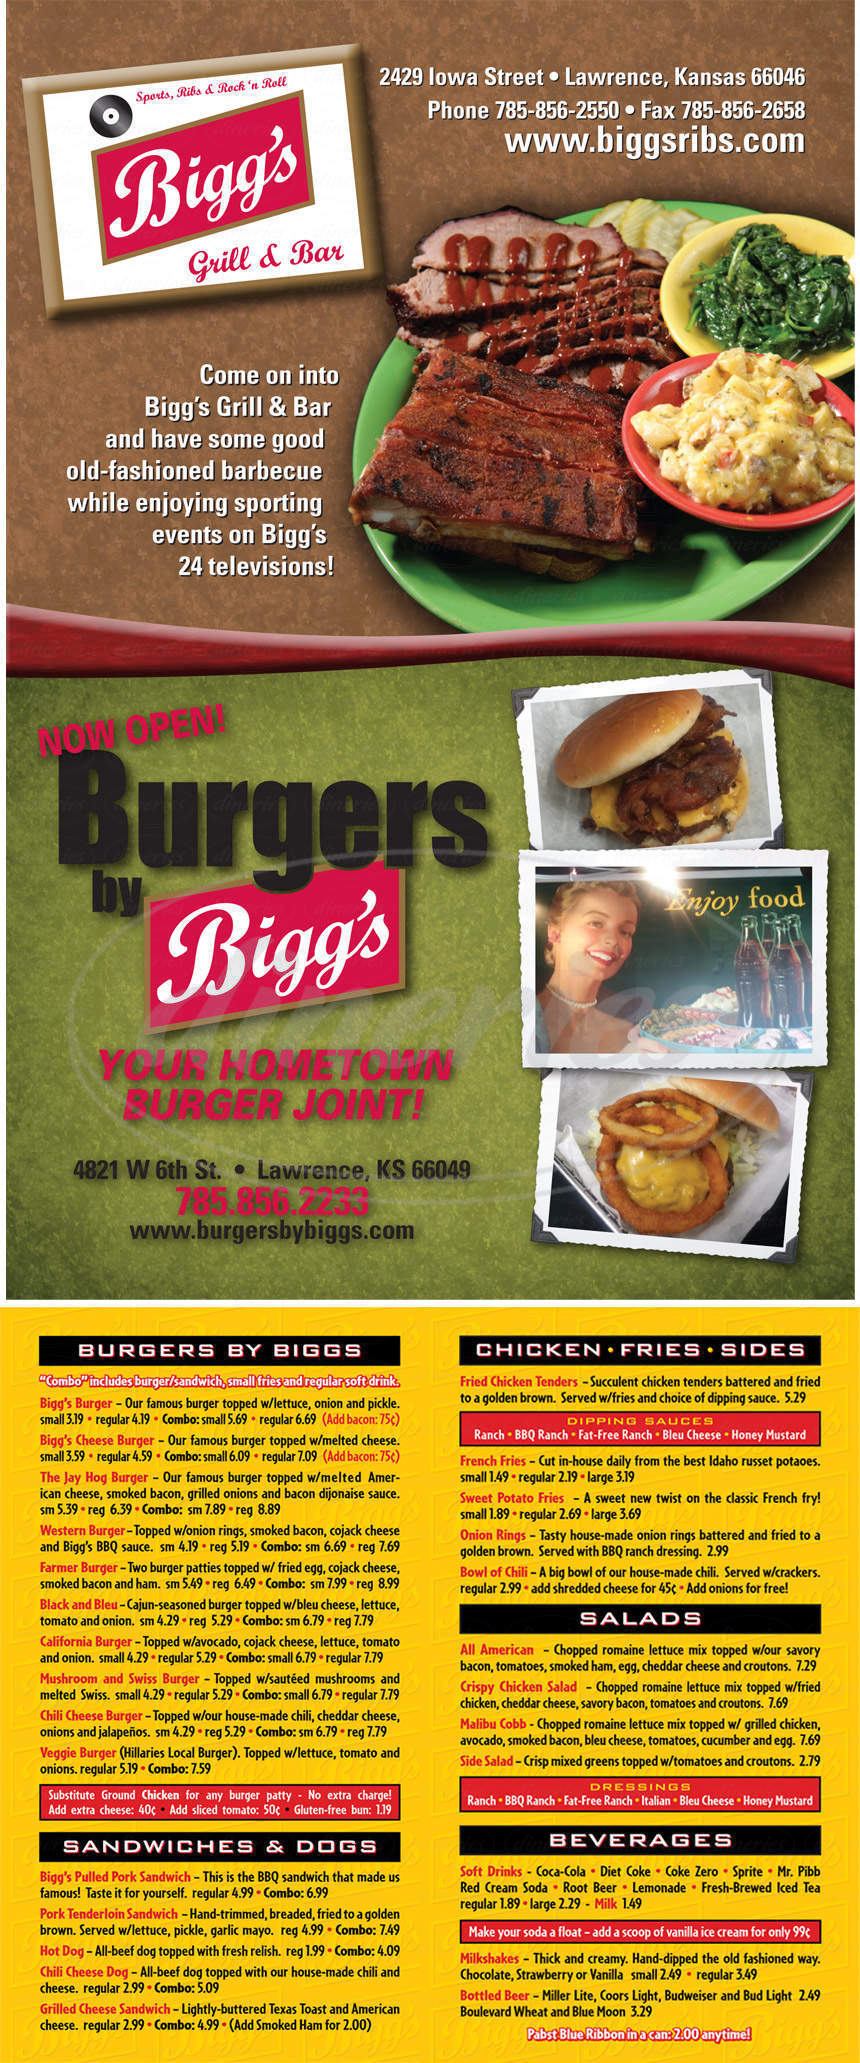 menu for Burgers by Biggs